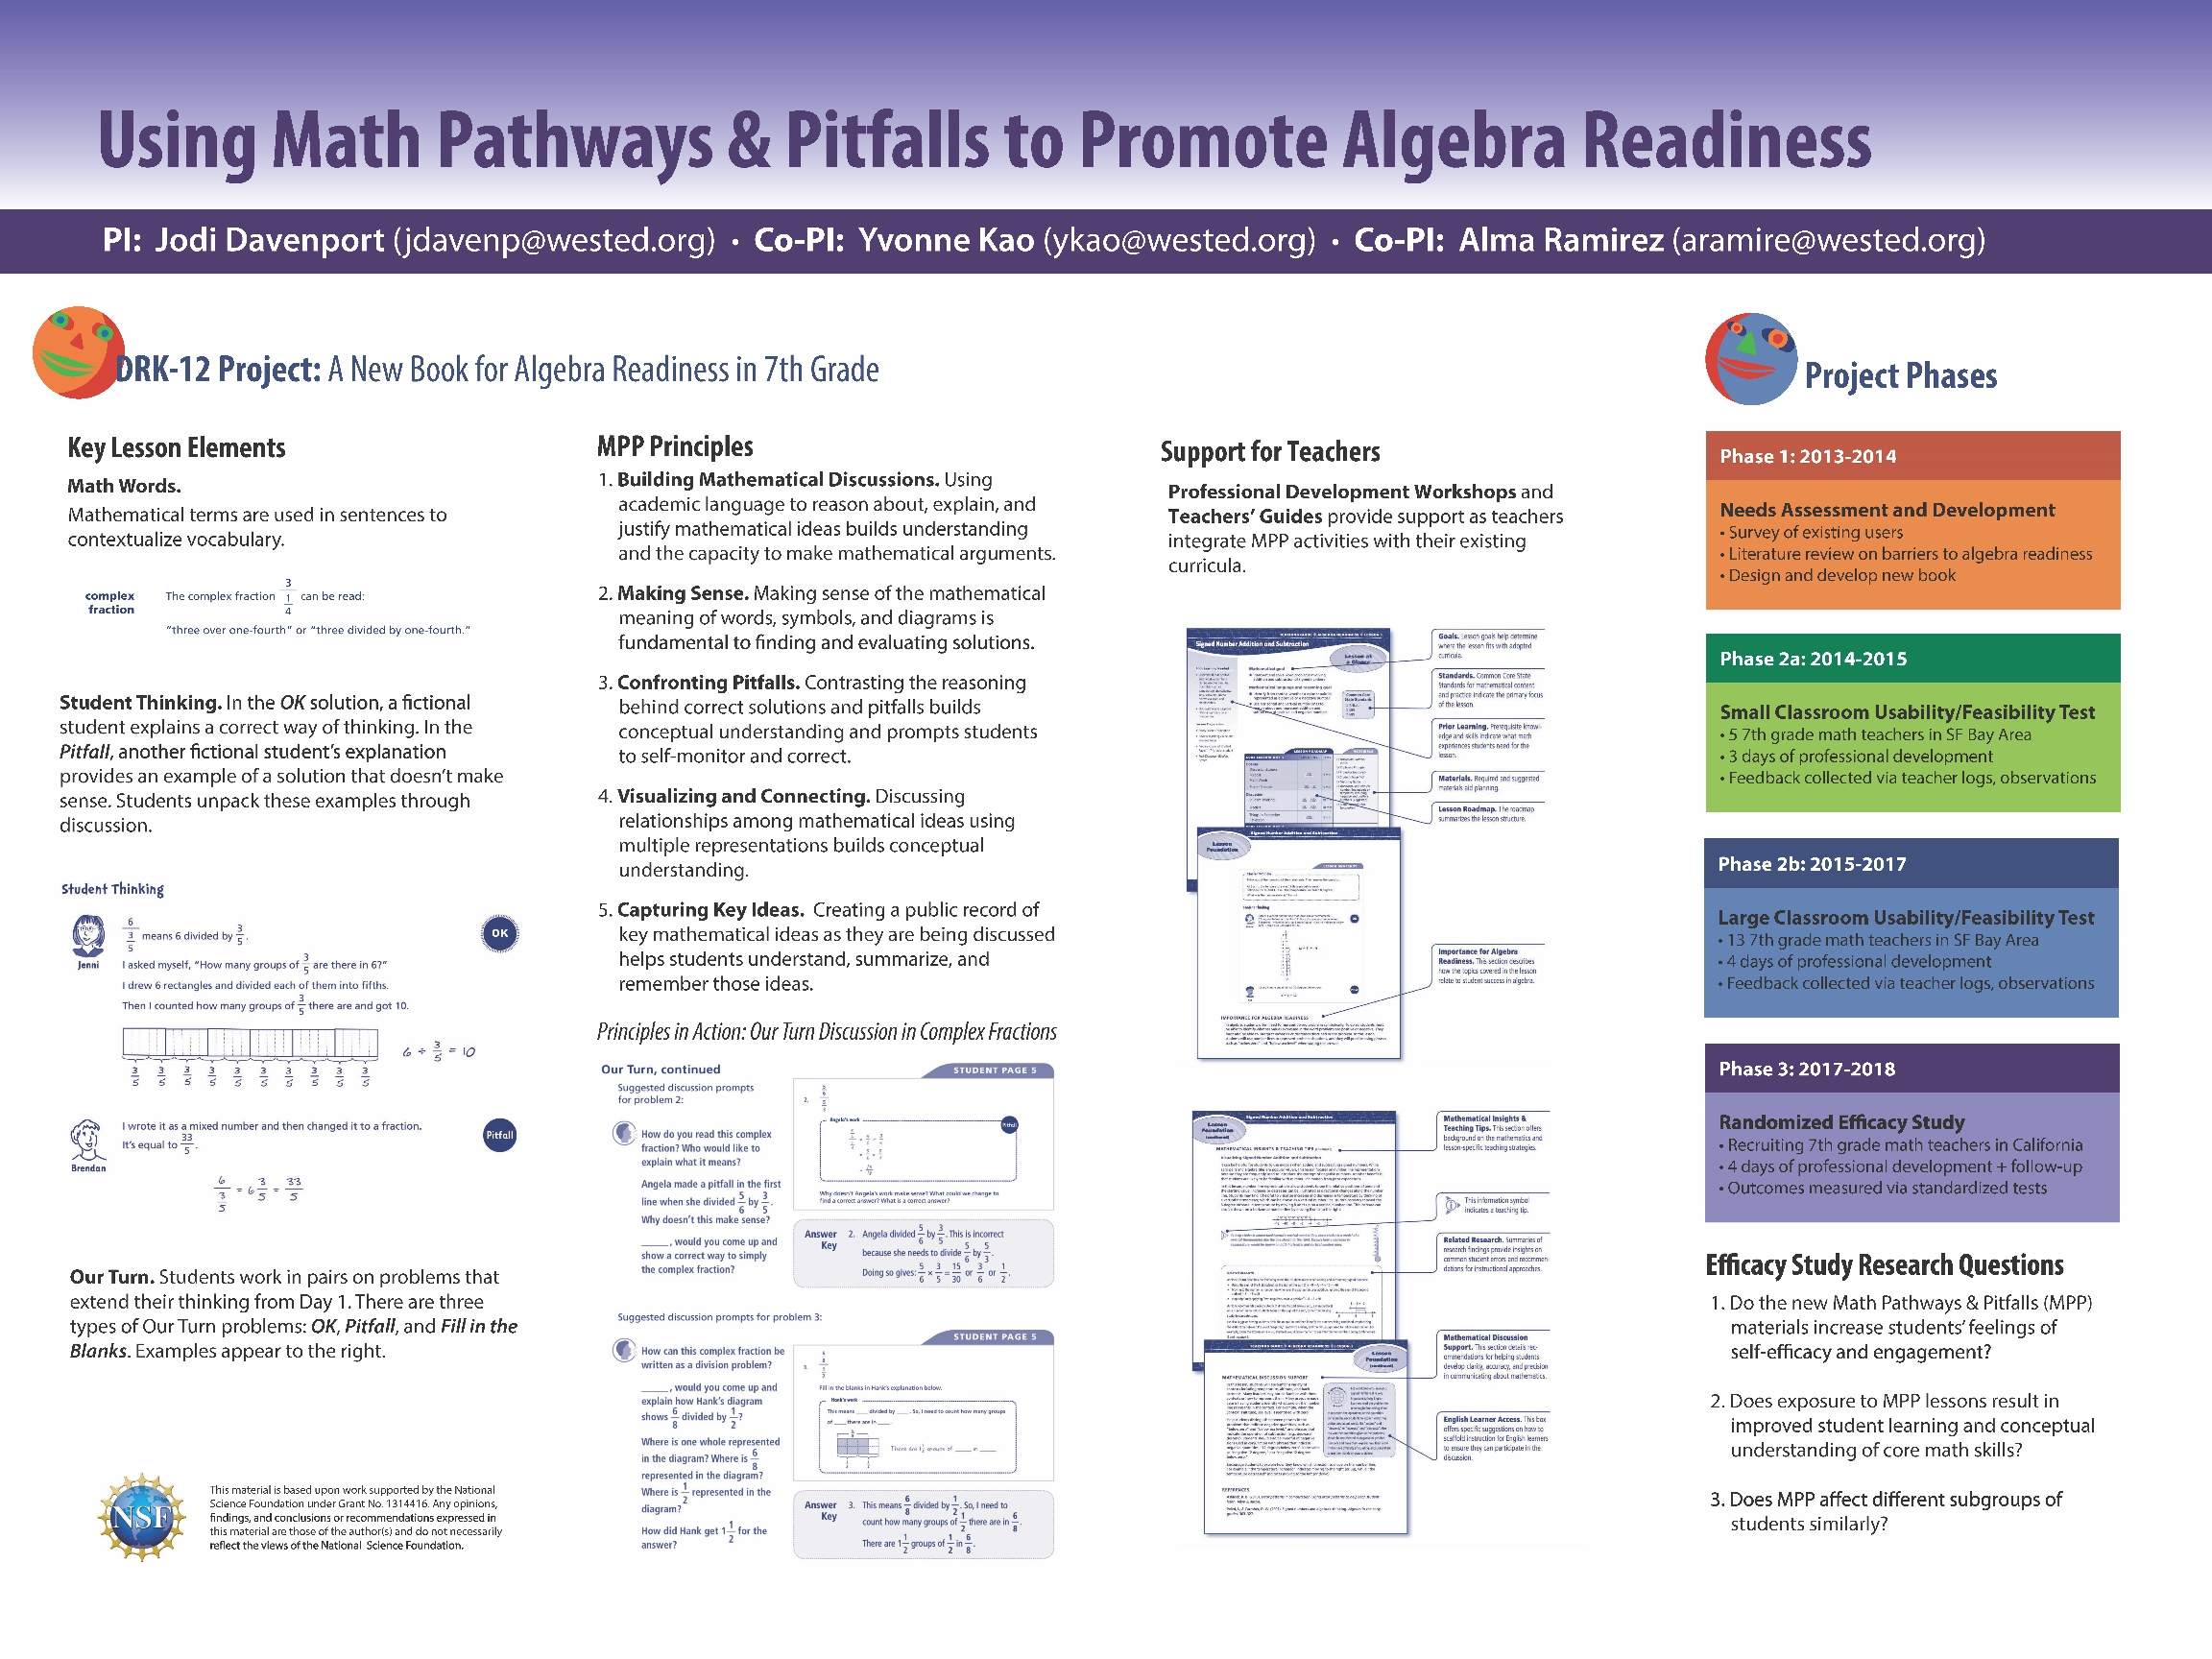 Cadre Photo Multiple Aera 2017 Poster Using Math Pathways And Pitfalls To Promote